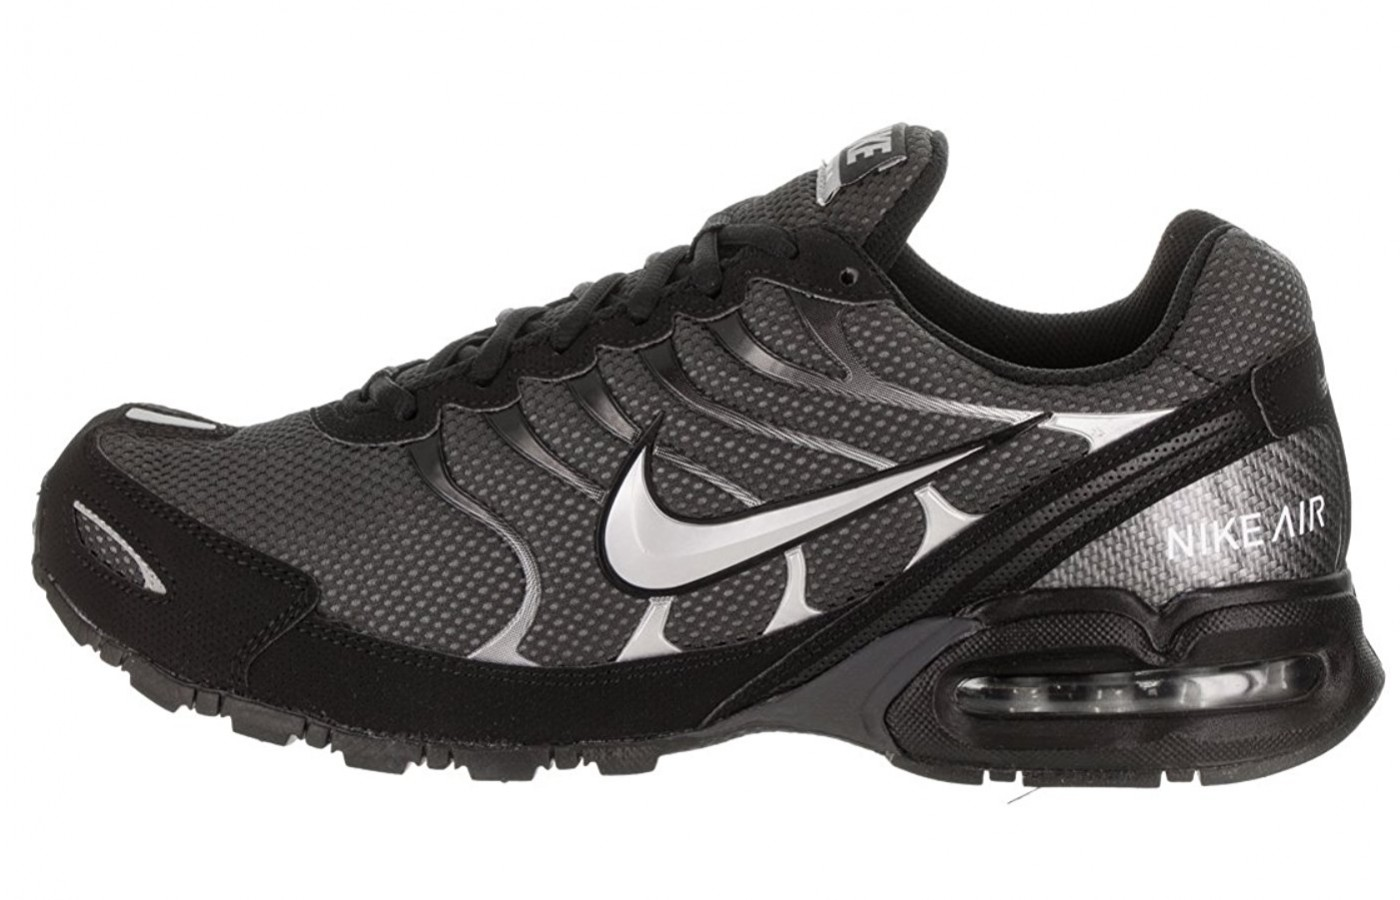 6de2c4ec2 Nike Air Max Torch 4 - WalkJogRun